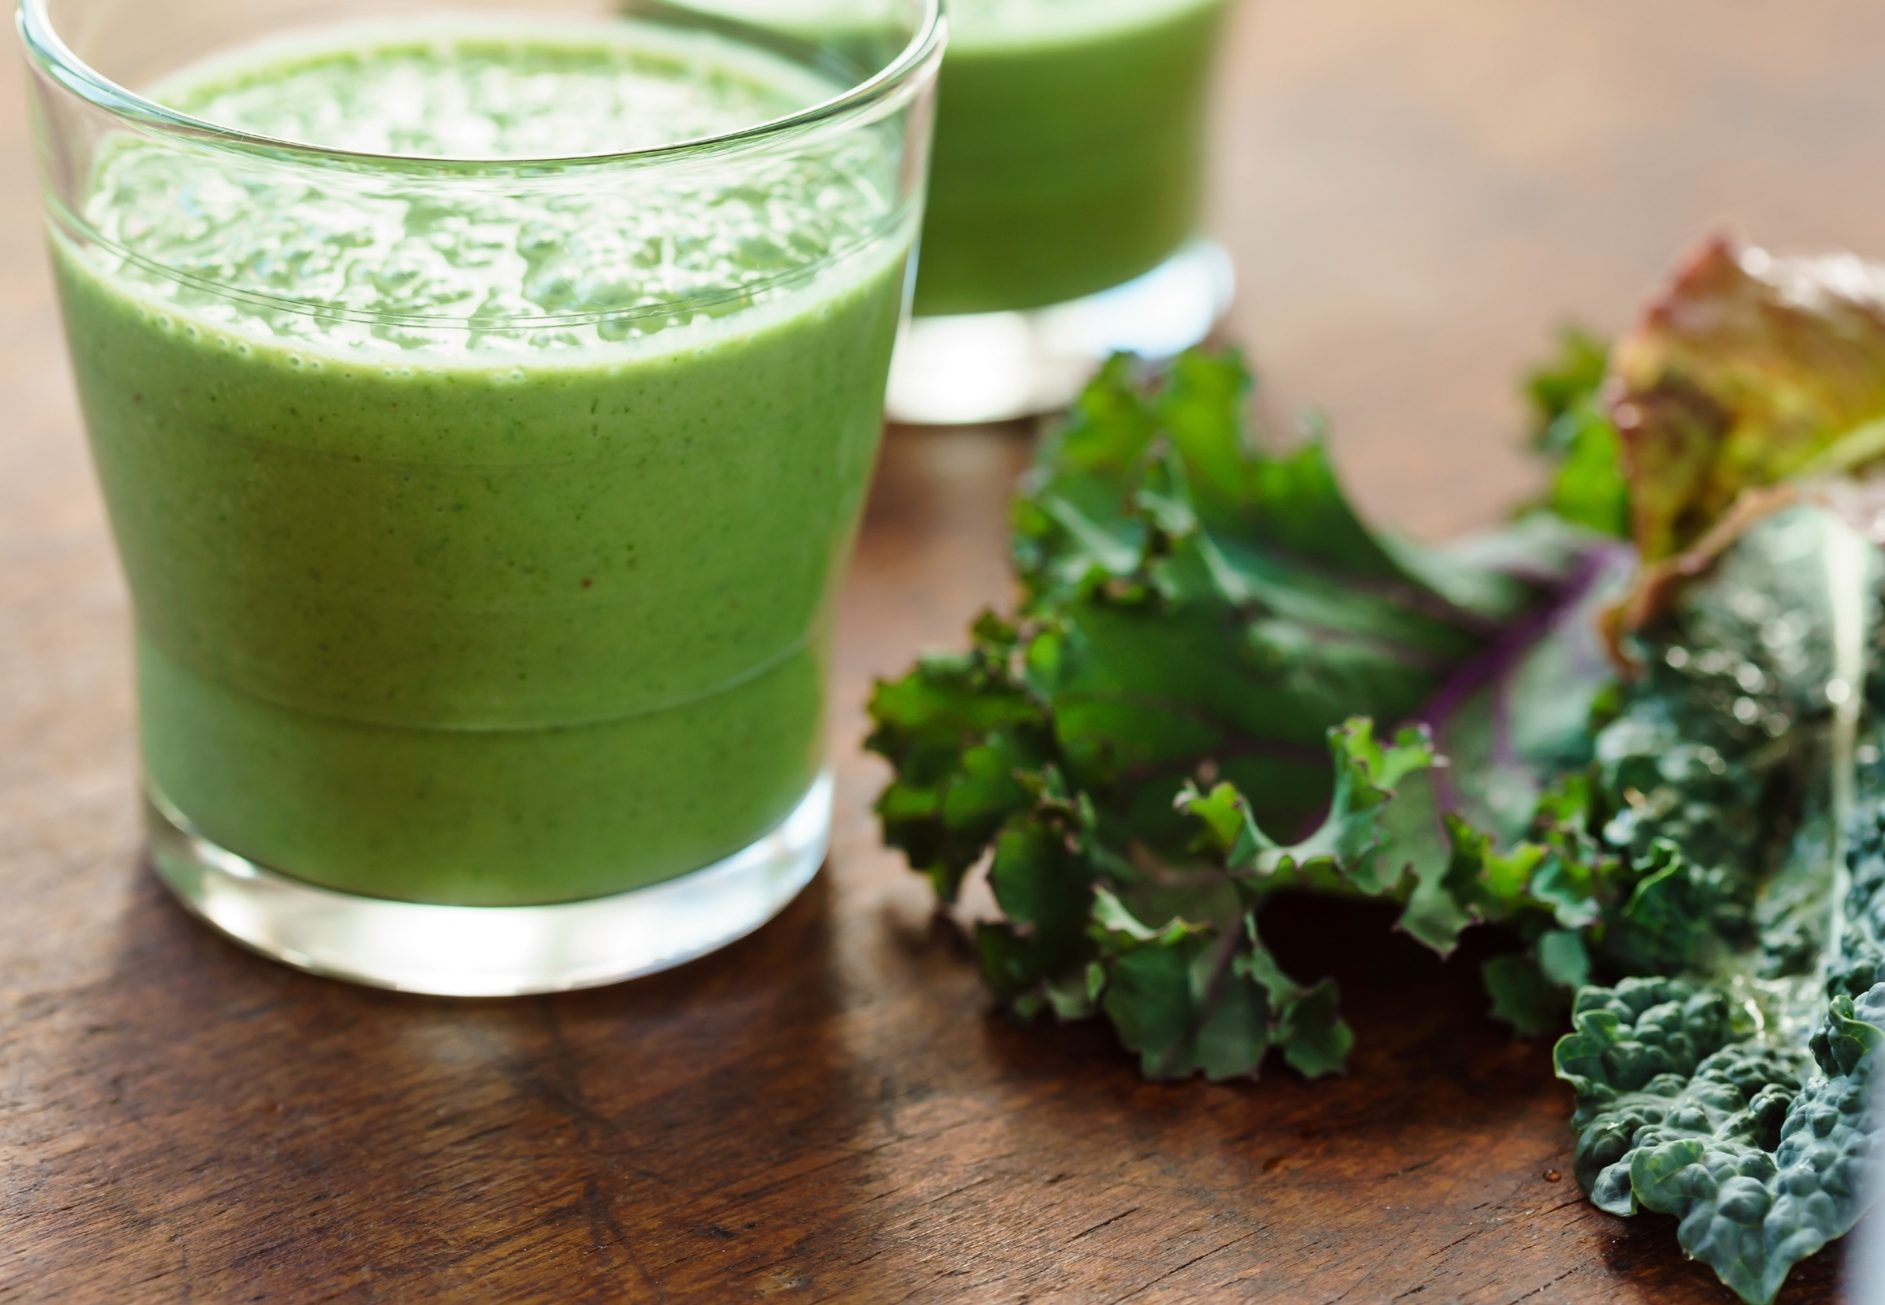 The Most Delicious Green Smoothie EVER